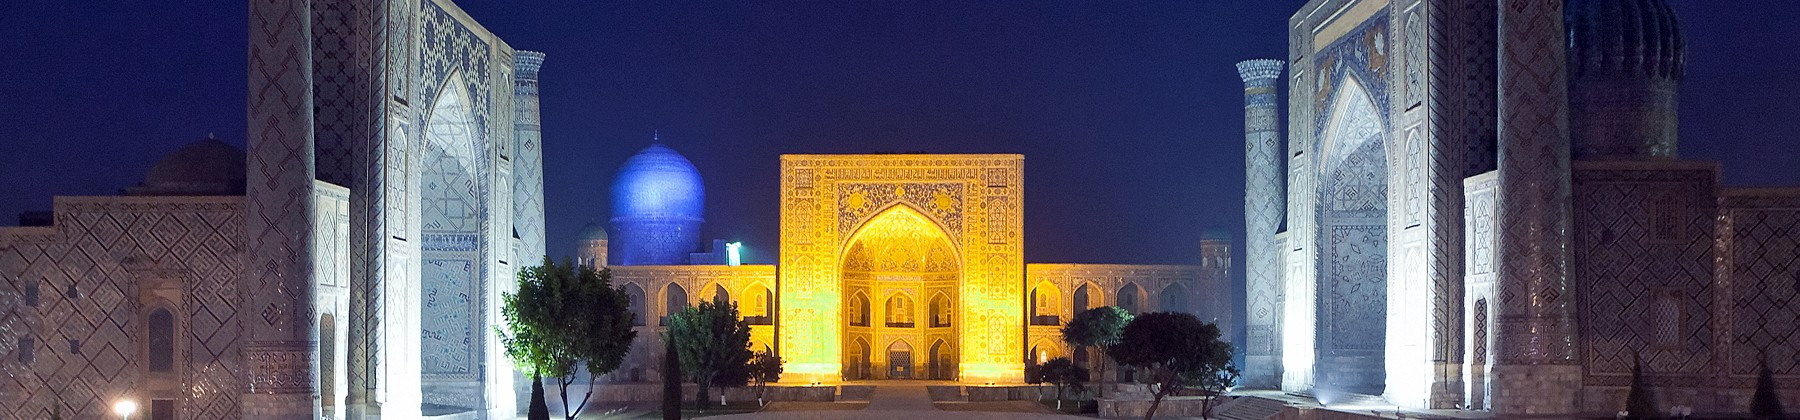 5-day Tour in Tashkent and Samarkand - 1